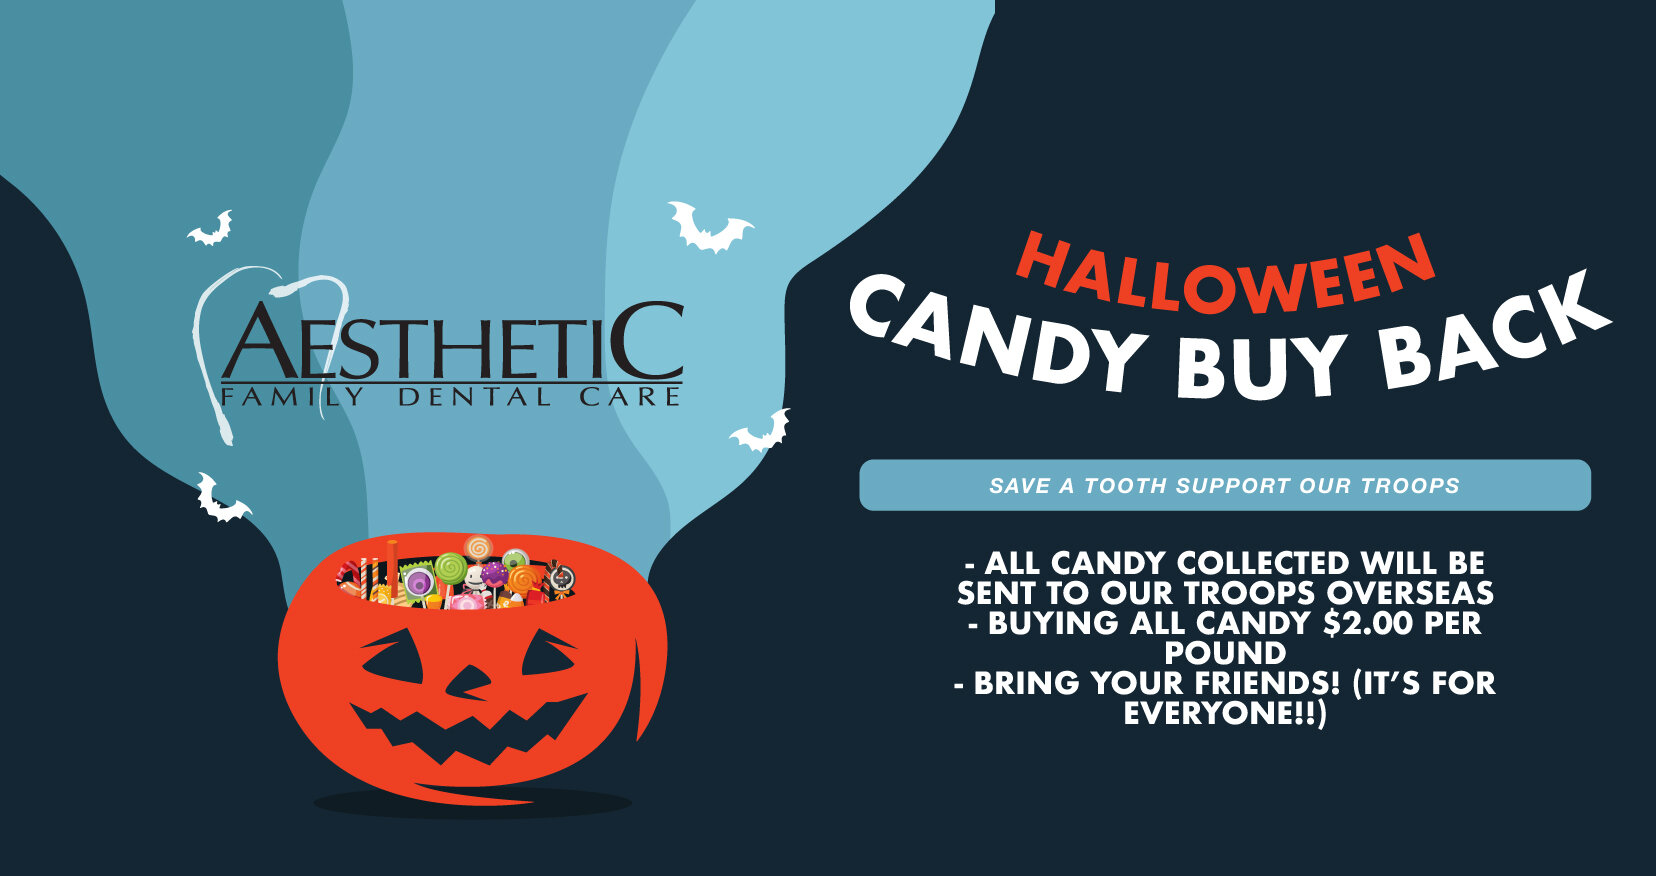 Blog---Halloween-Candy-Buy-Back.jpg